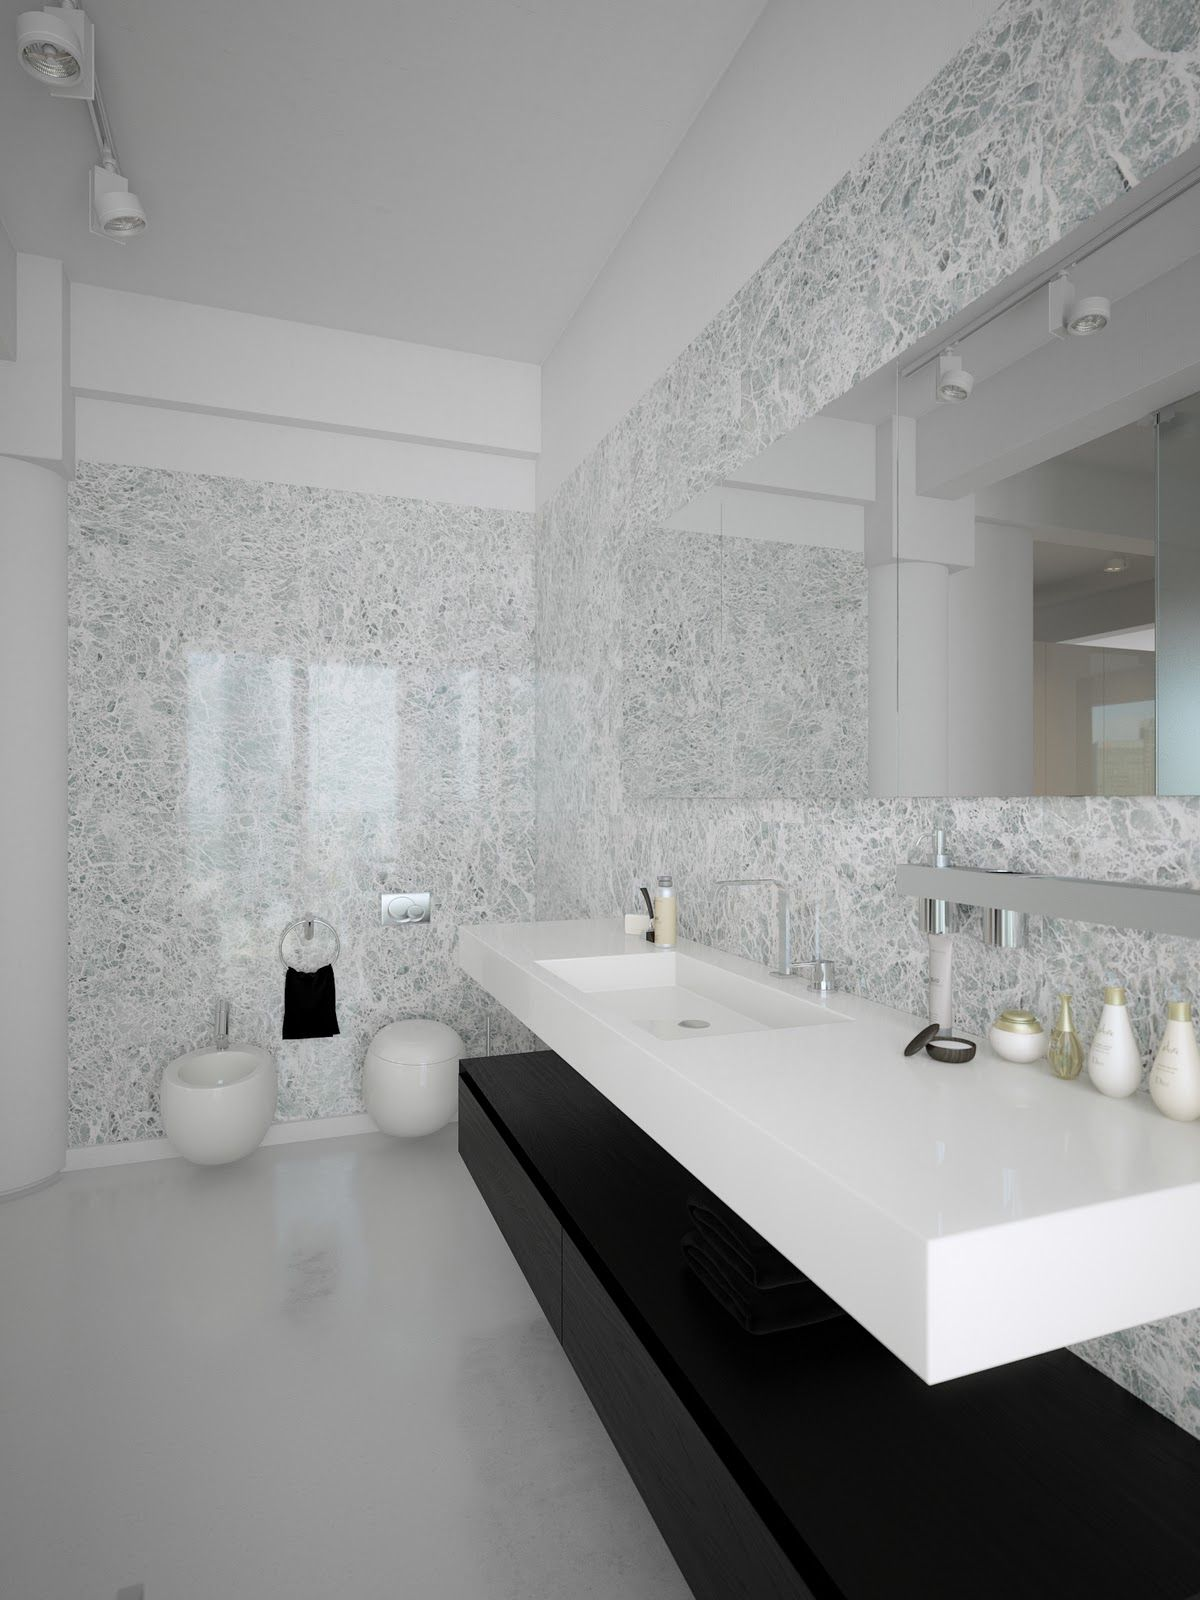 Coolest minimalist modern bathroom design contemporary bathroom designs contemporary Bathroom design ideas with marble